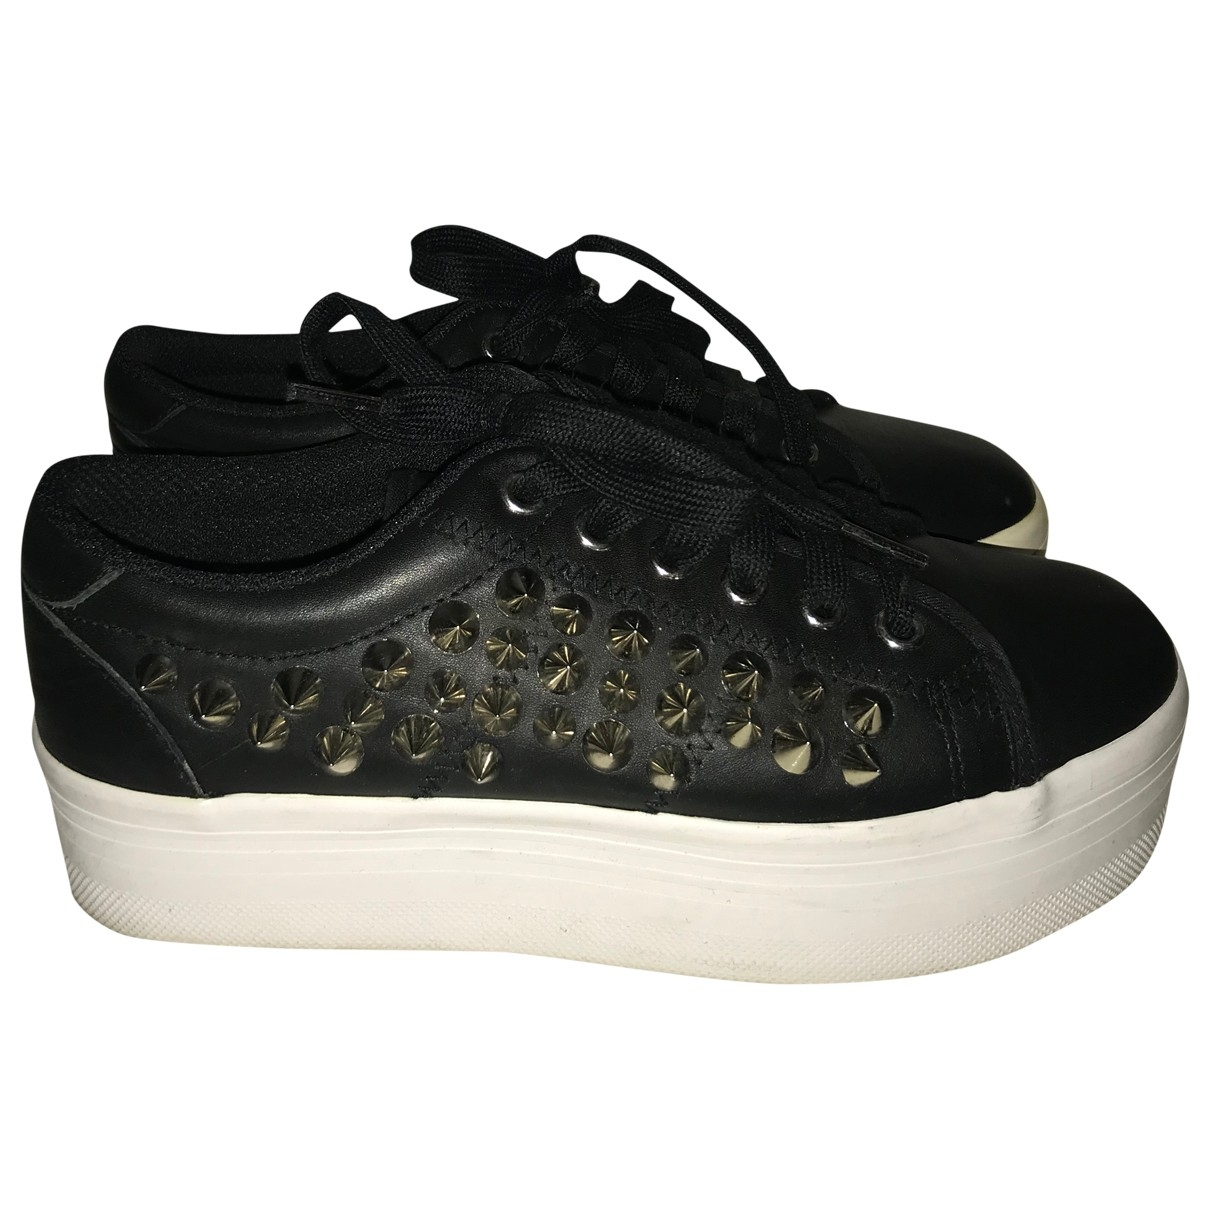 Jeffrey Campbell \N Black Leather Trainers for Women 37 EU